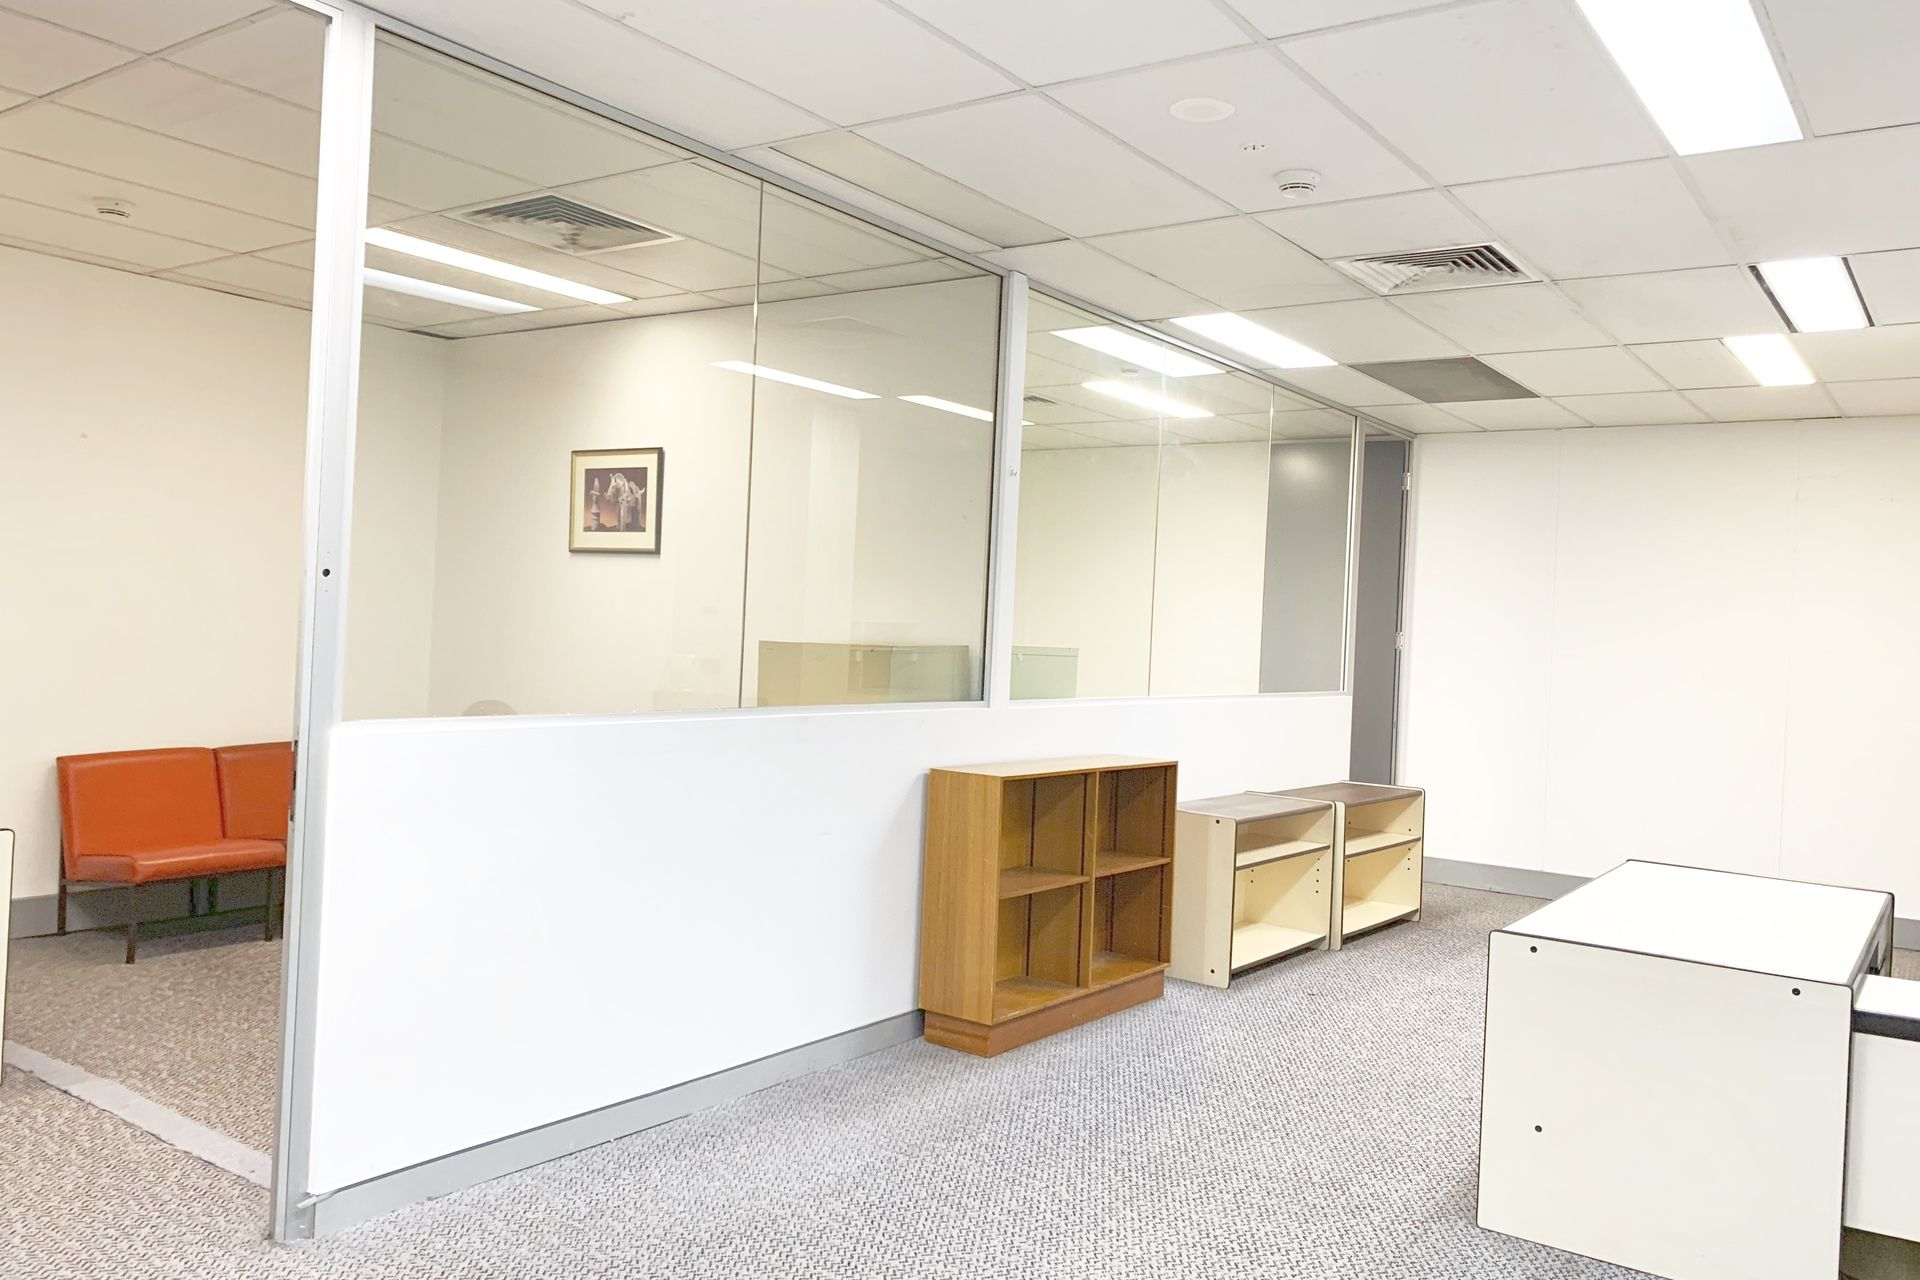 CONTEMPORARY OFFICE SUITE LOCATED IN 'THE HUB'